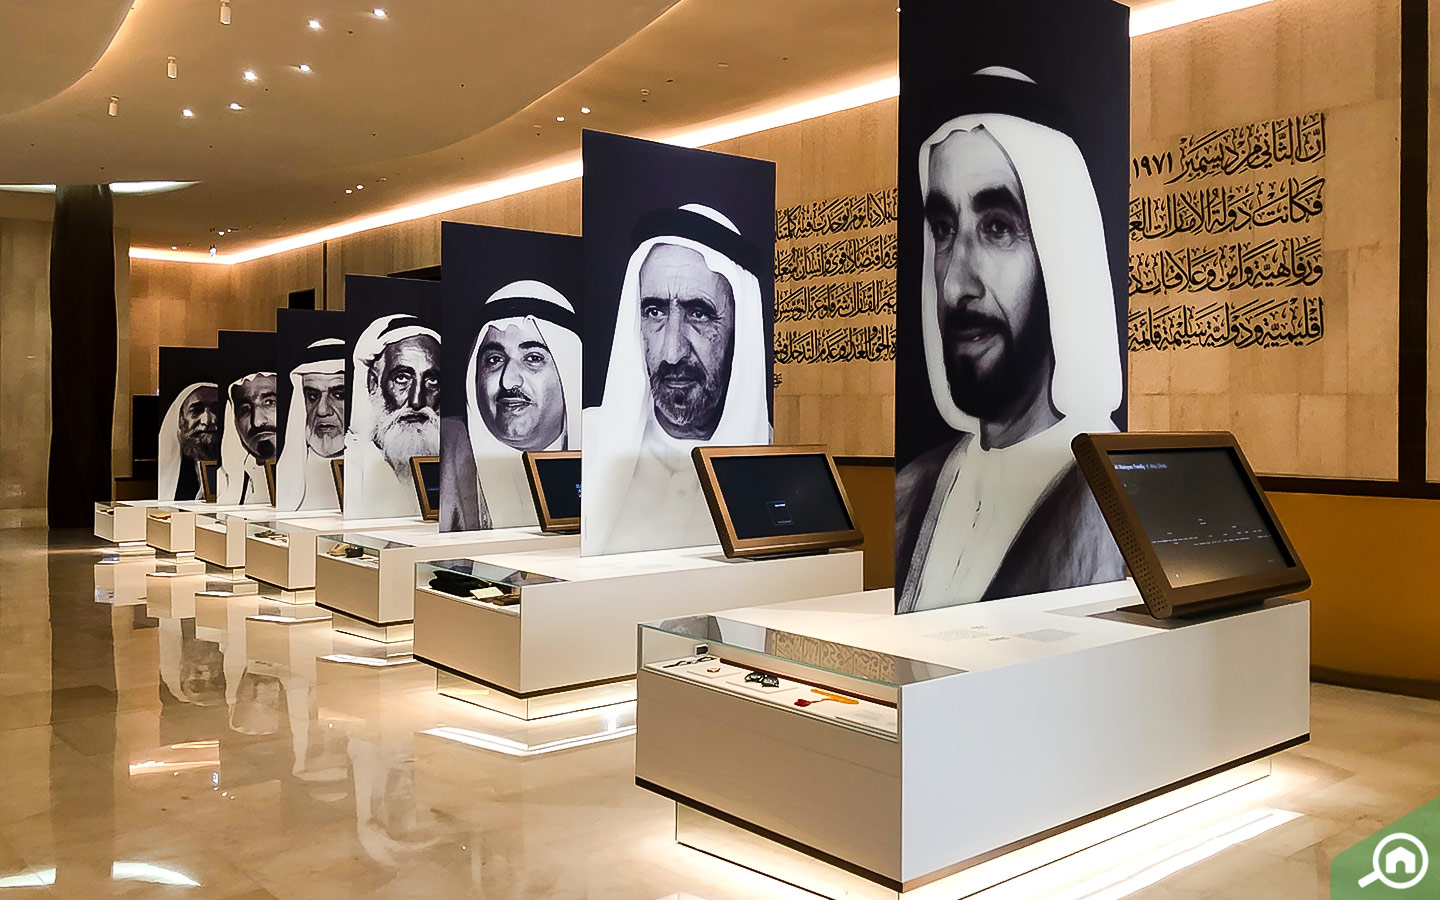 Pictures of the founding fathers of the UAE